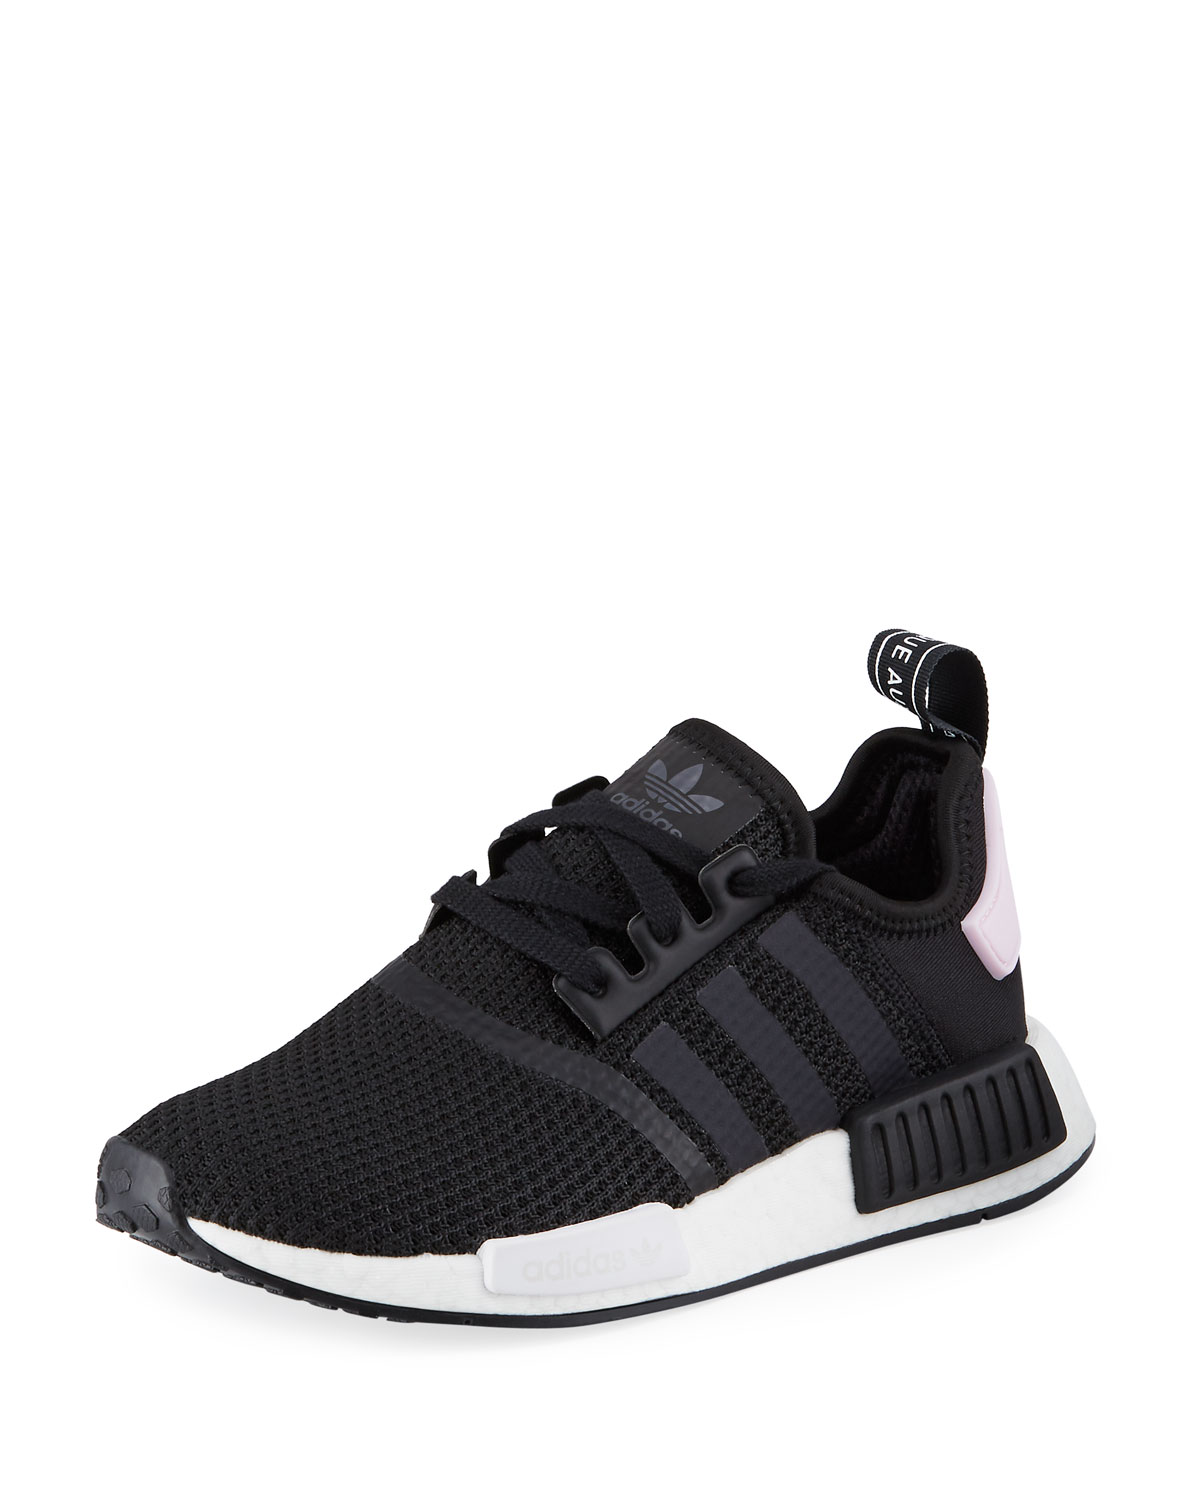 adidas women 39 s nmd r1 primeknit sneakers neiman marcus. Black Bedroom Furniture Sets. Home Design Ideas